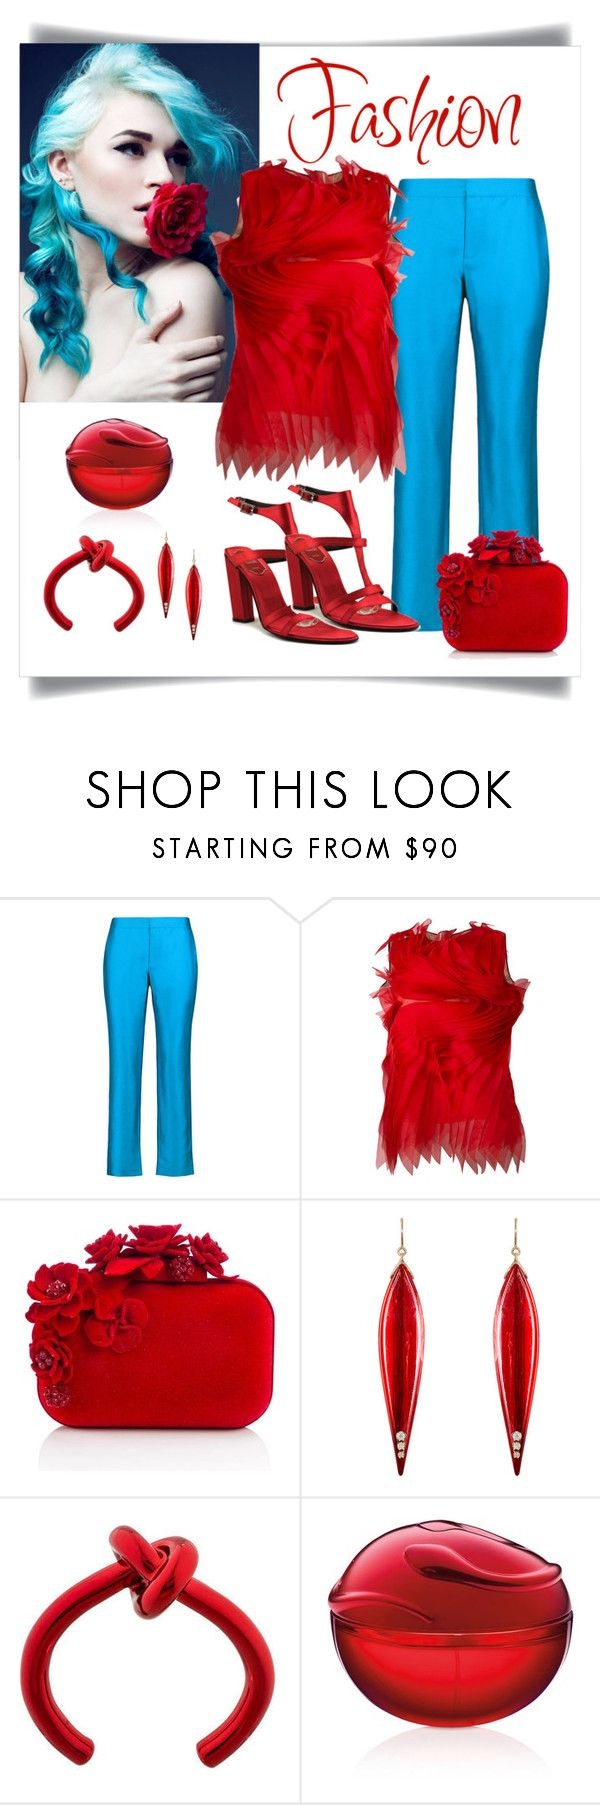 """Gianluca Capannolo Isabella Red Top Look"" by romaboots-1 ❤ liked on Polyvore featuring Raoul, Gianluca Capannolo, Jimmy Choo, Mark Davis, DKNY and Roger Vivier"